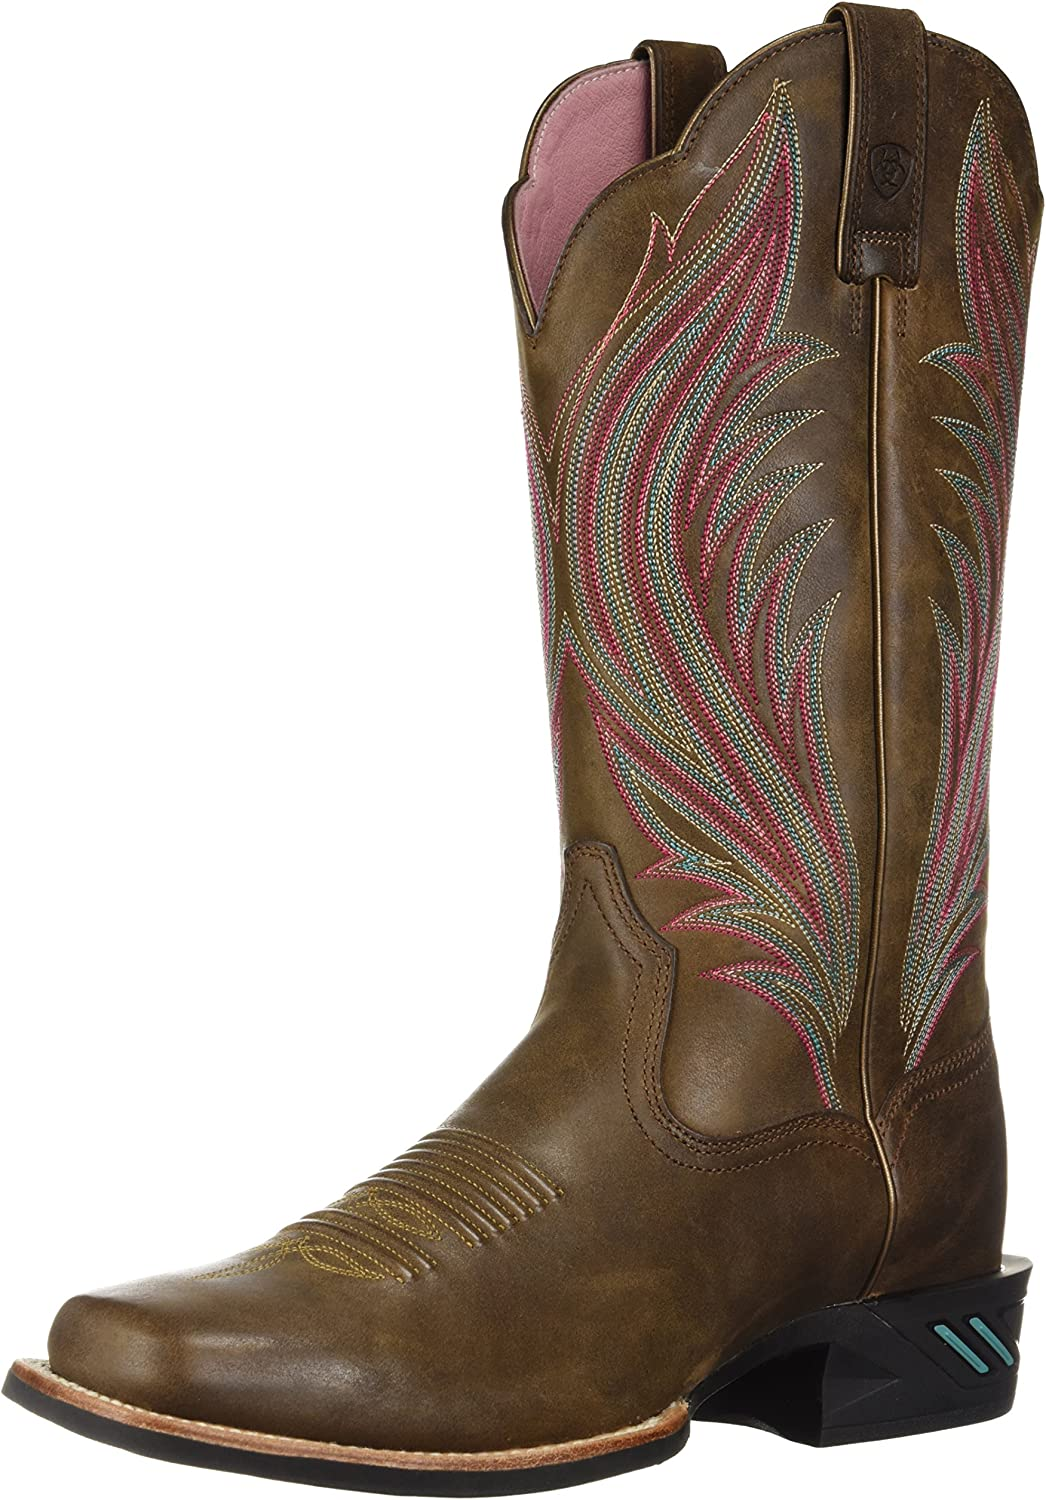 Ariat Womens Catalyst Prime Western Boot